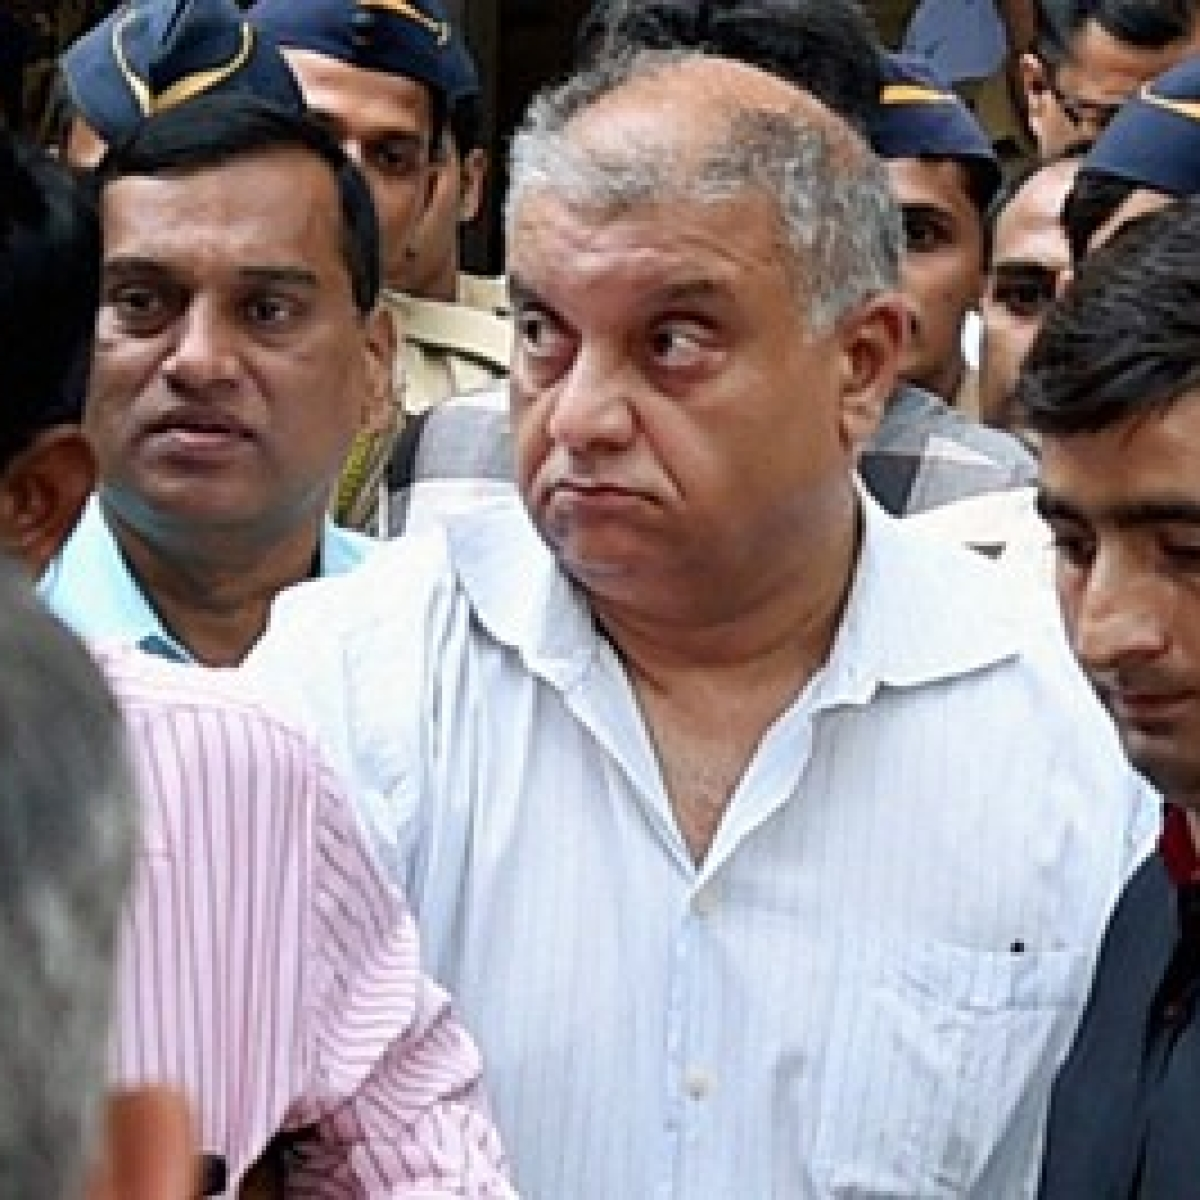 Peter Mukherjea's bail grounds pose new questions